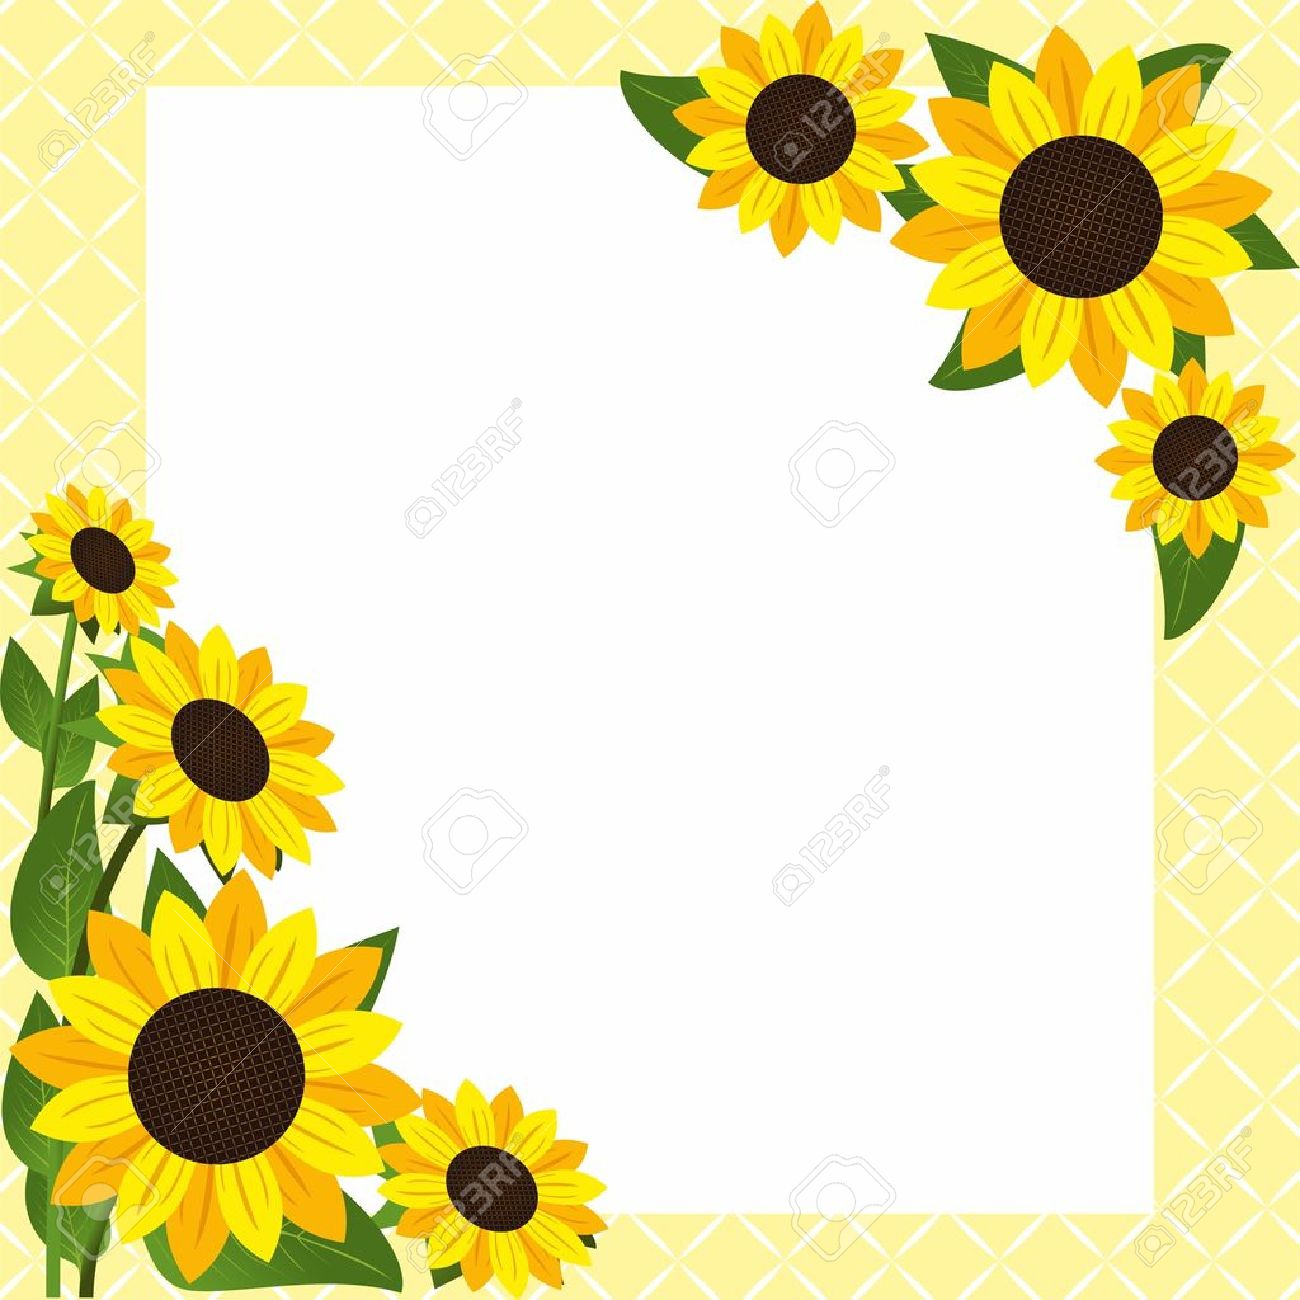 Free sunflower clipart borders 1 » Clipart Station.